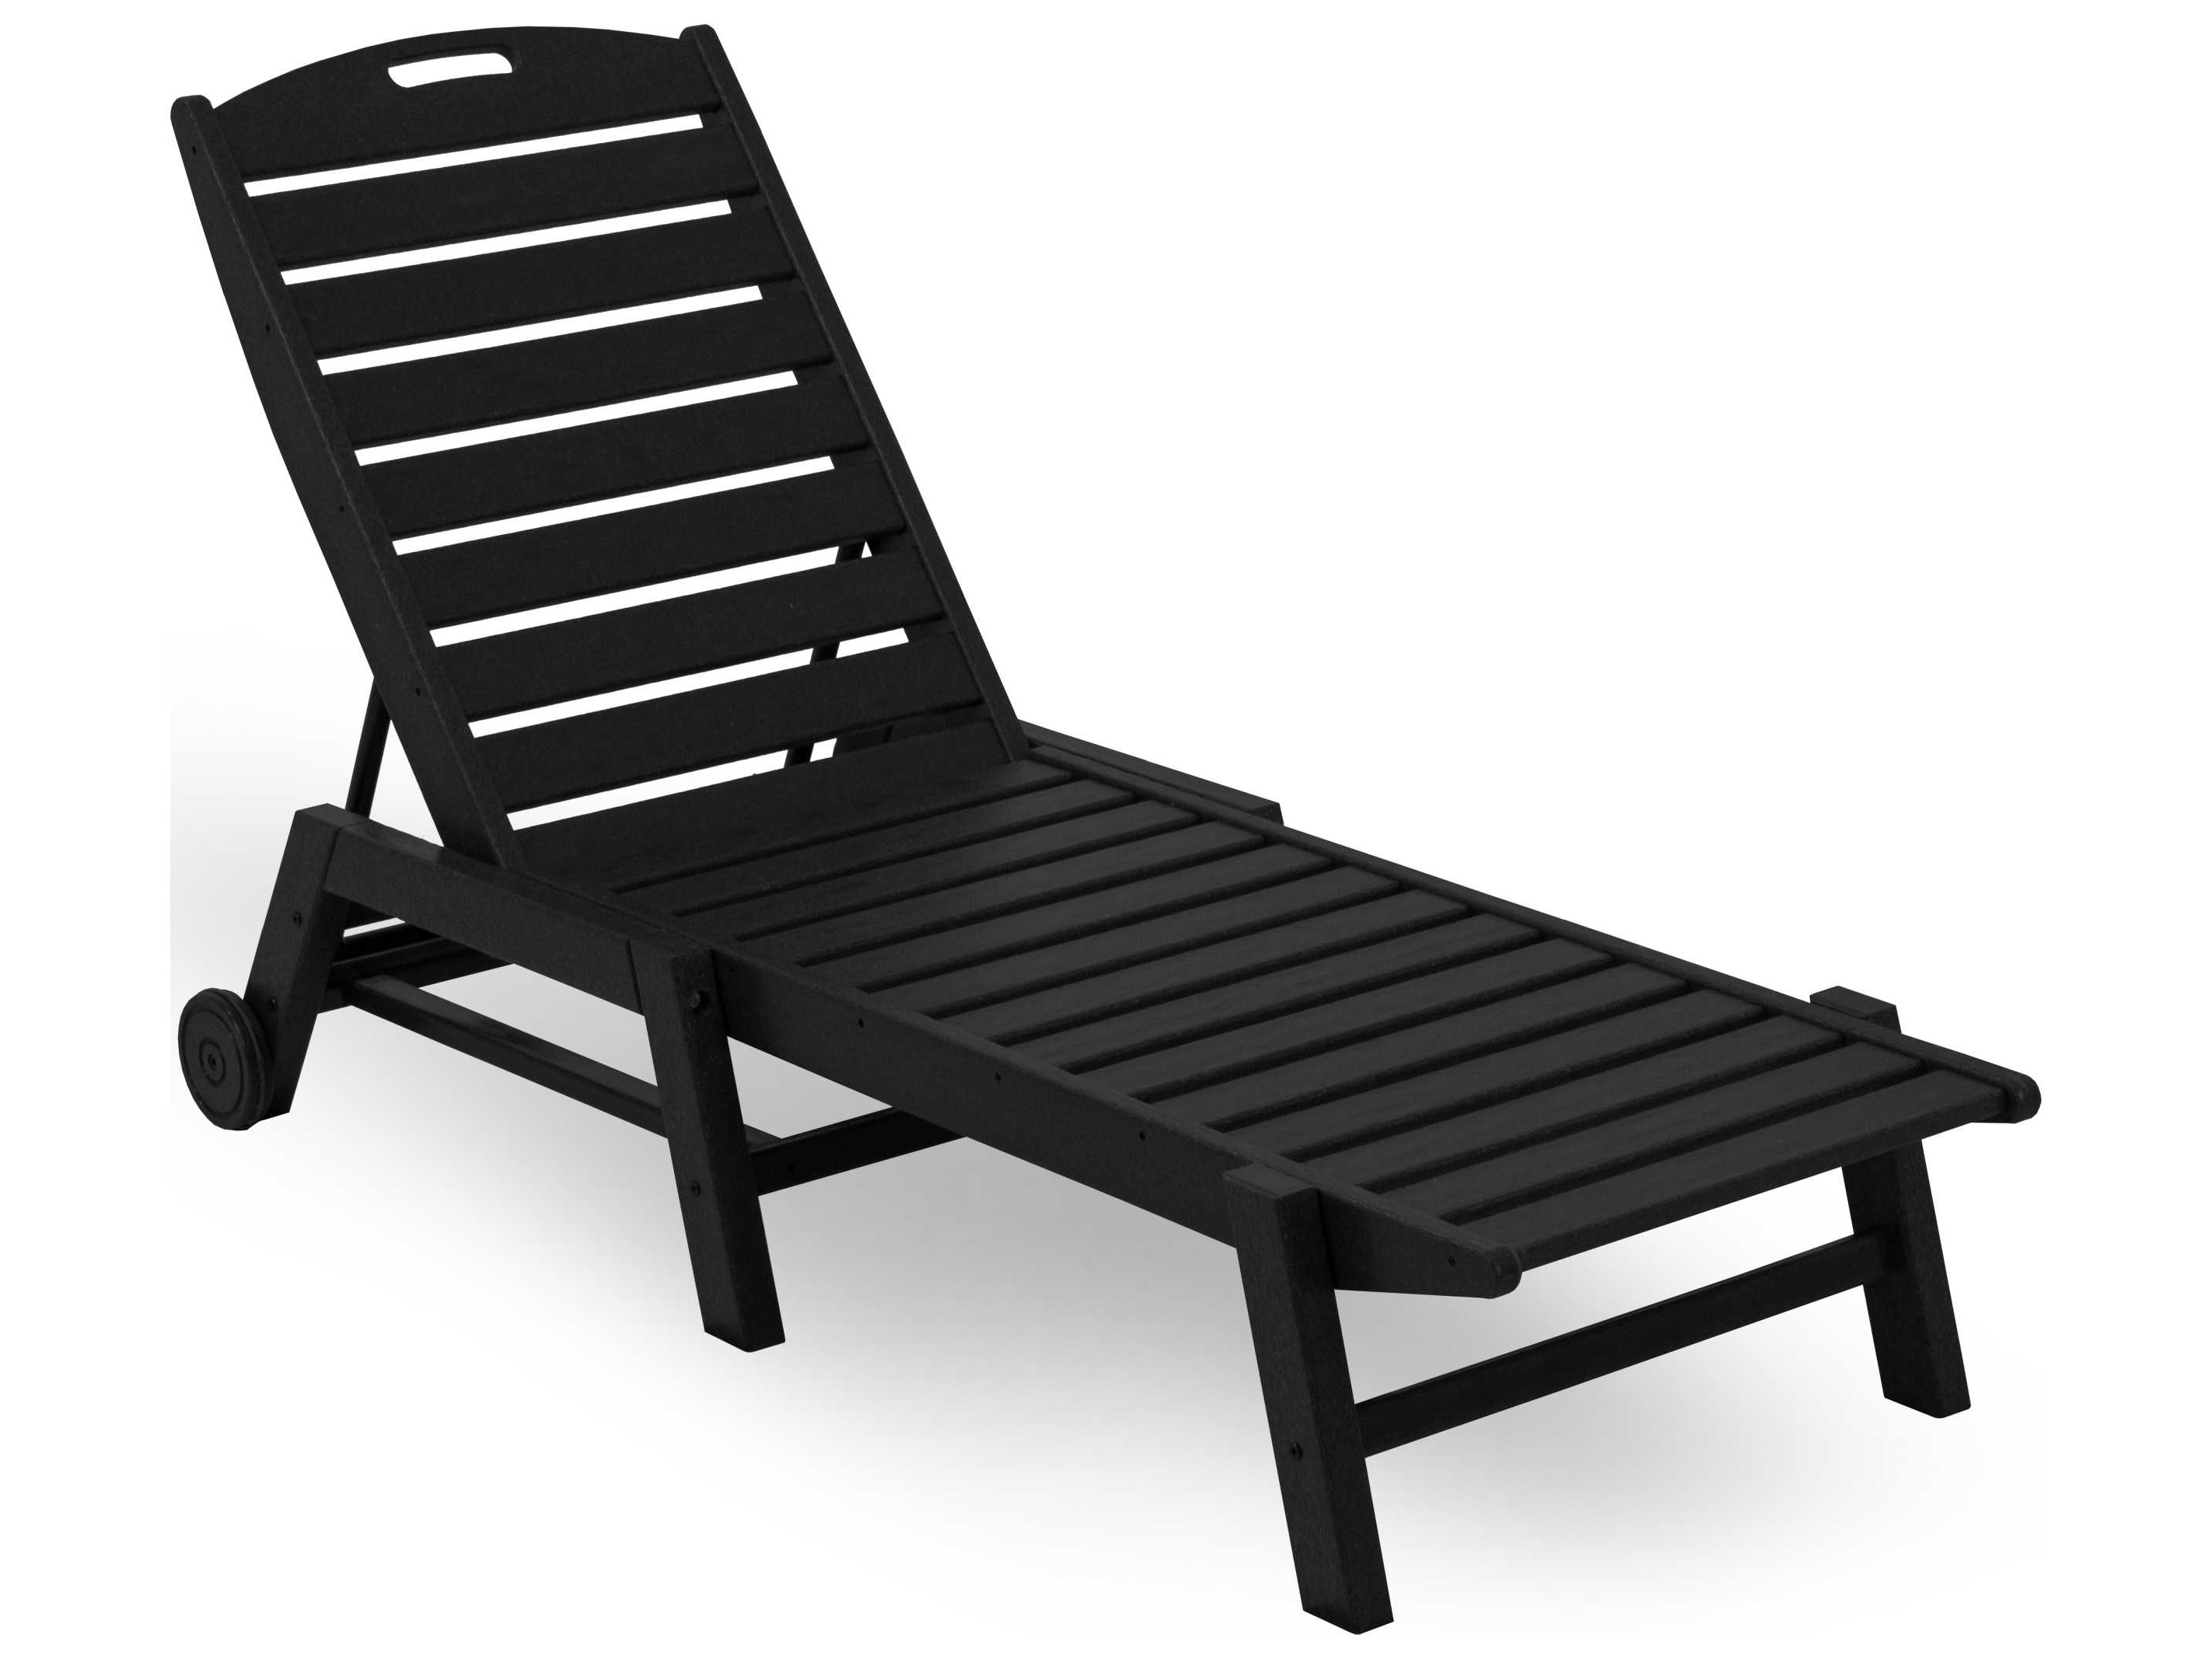 Stackable Nautical Outdoor Chaise Lounges In Favorite Polywood® Nautical Recycled Plastic Stackable Chaise Lounge (View 19 of 25)